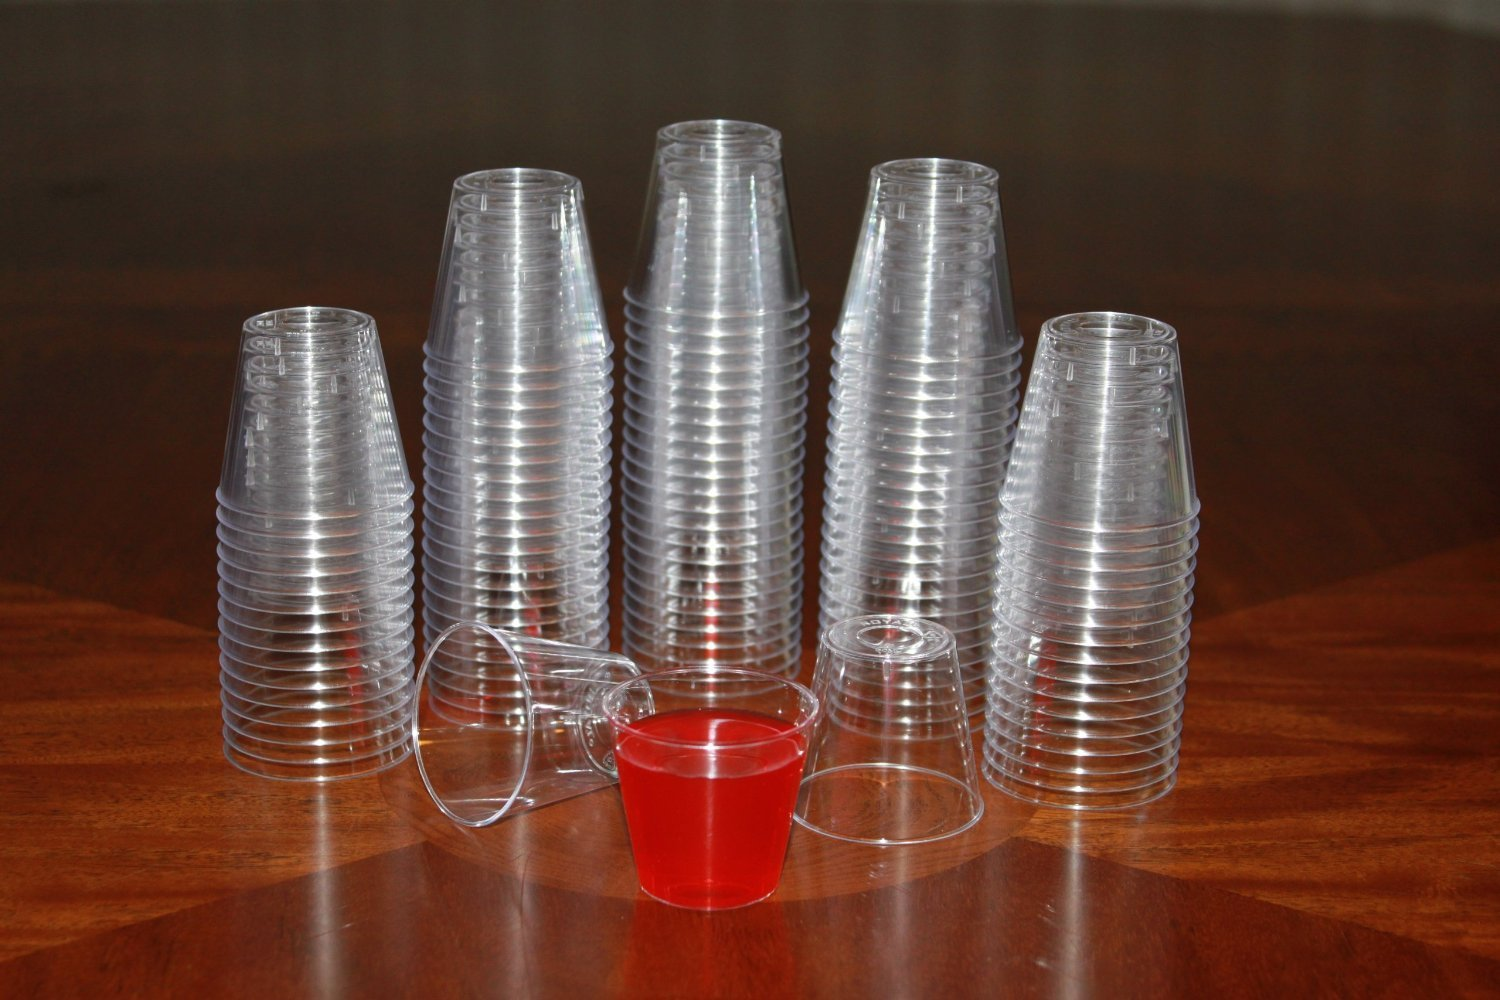 1 ounce Clear Plastic Shot Glasses - Box of 500 (1 oz) by Polar Ice